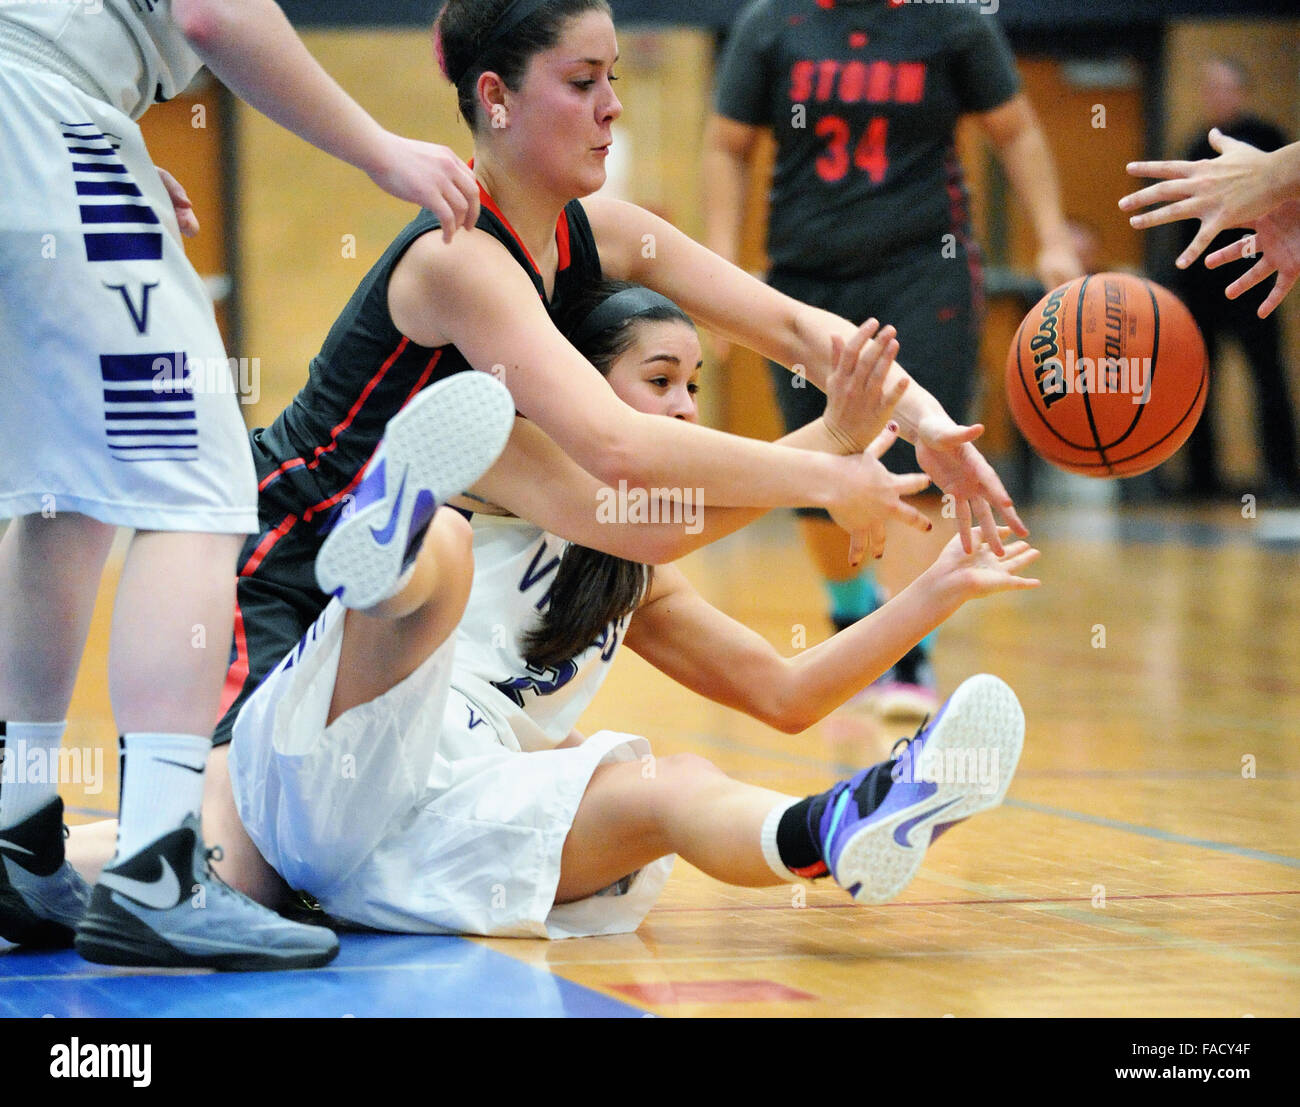 Players battle for possession of loose ball during a high school basketball game.USA. - Stock Image